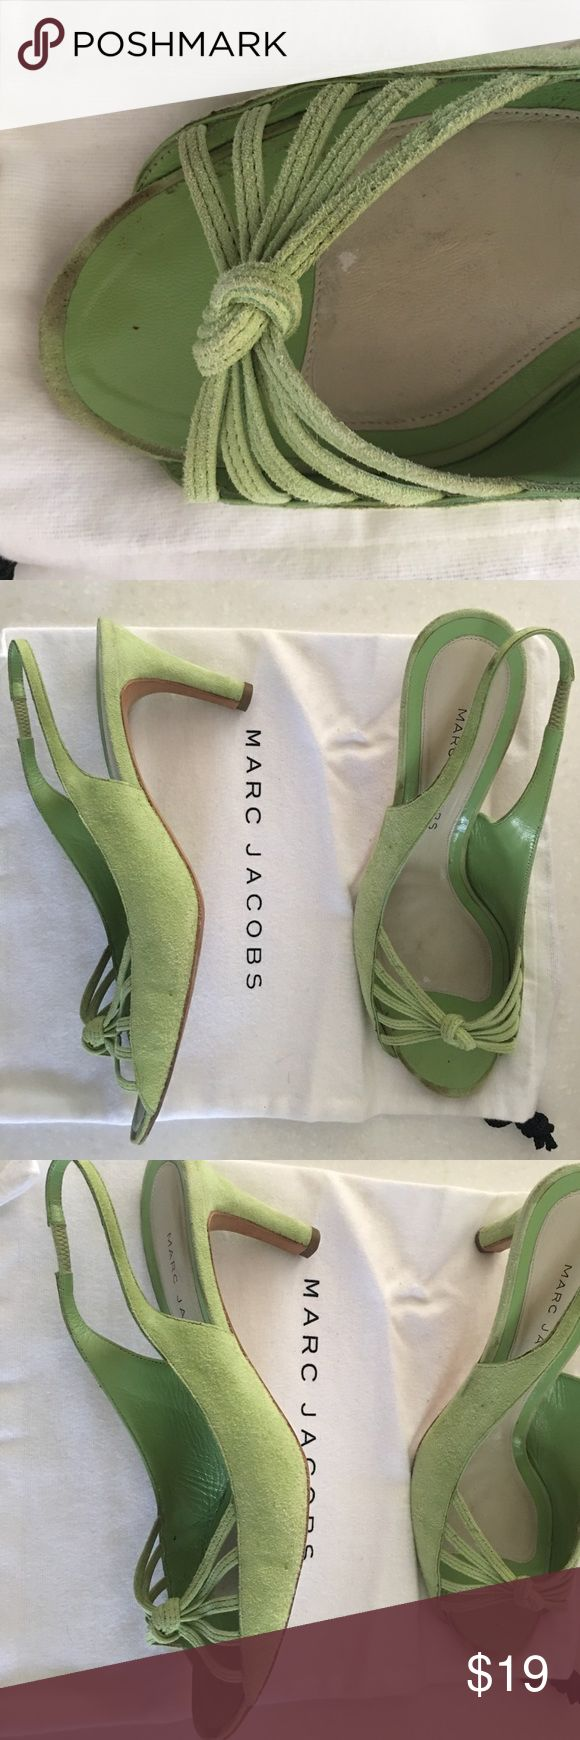 arc jacobs pastel green sandals. Marc jacobs pastel green sandals. Sz41 gently worn-could use suede cleaner-see photos 2.75 heel felt bag and box Marc Jacobs Shoes Sandals